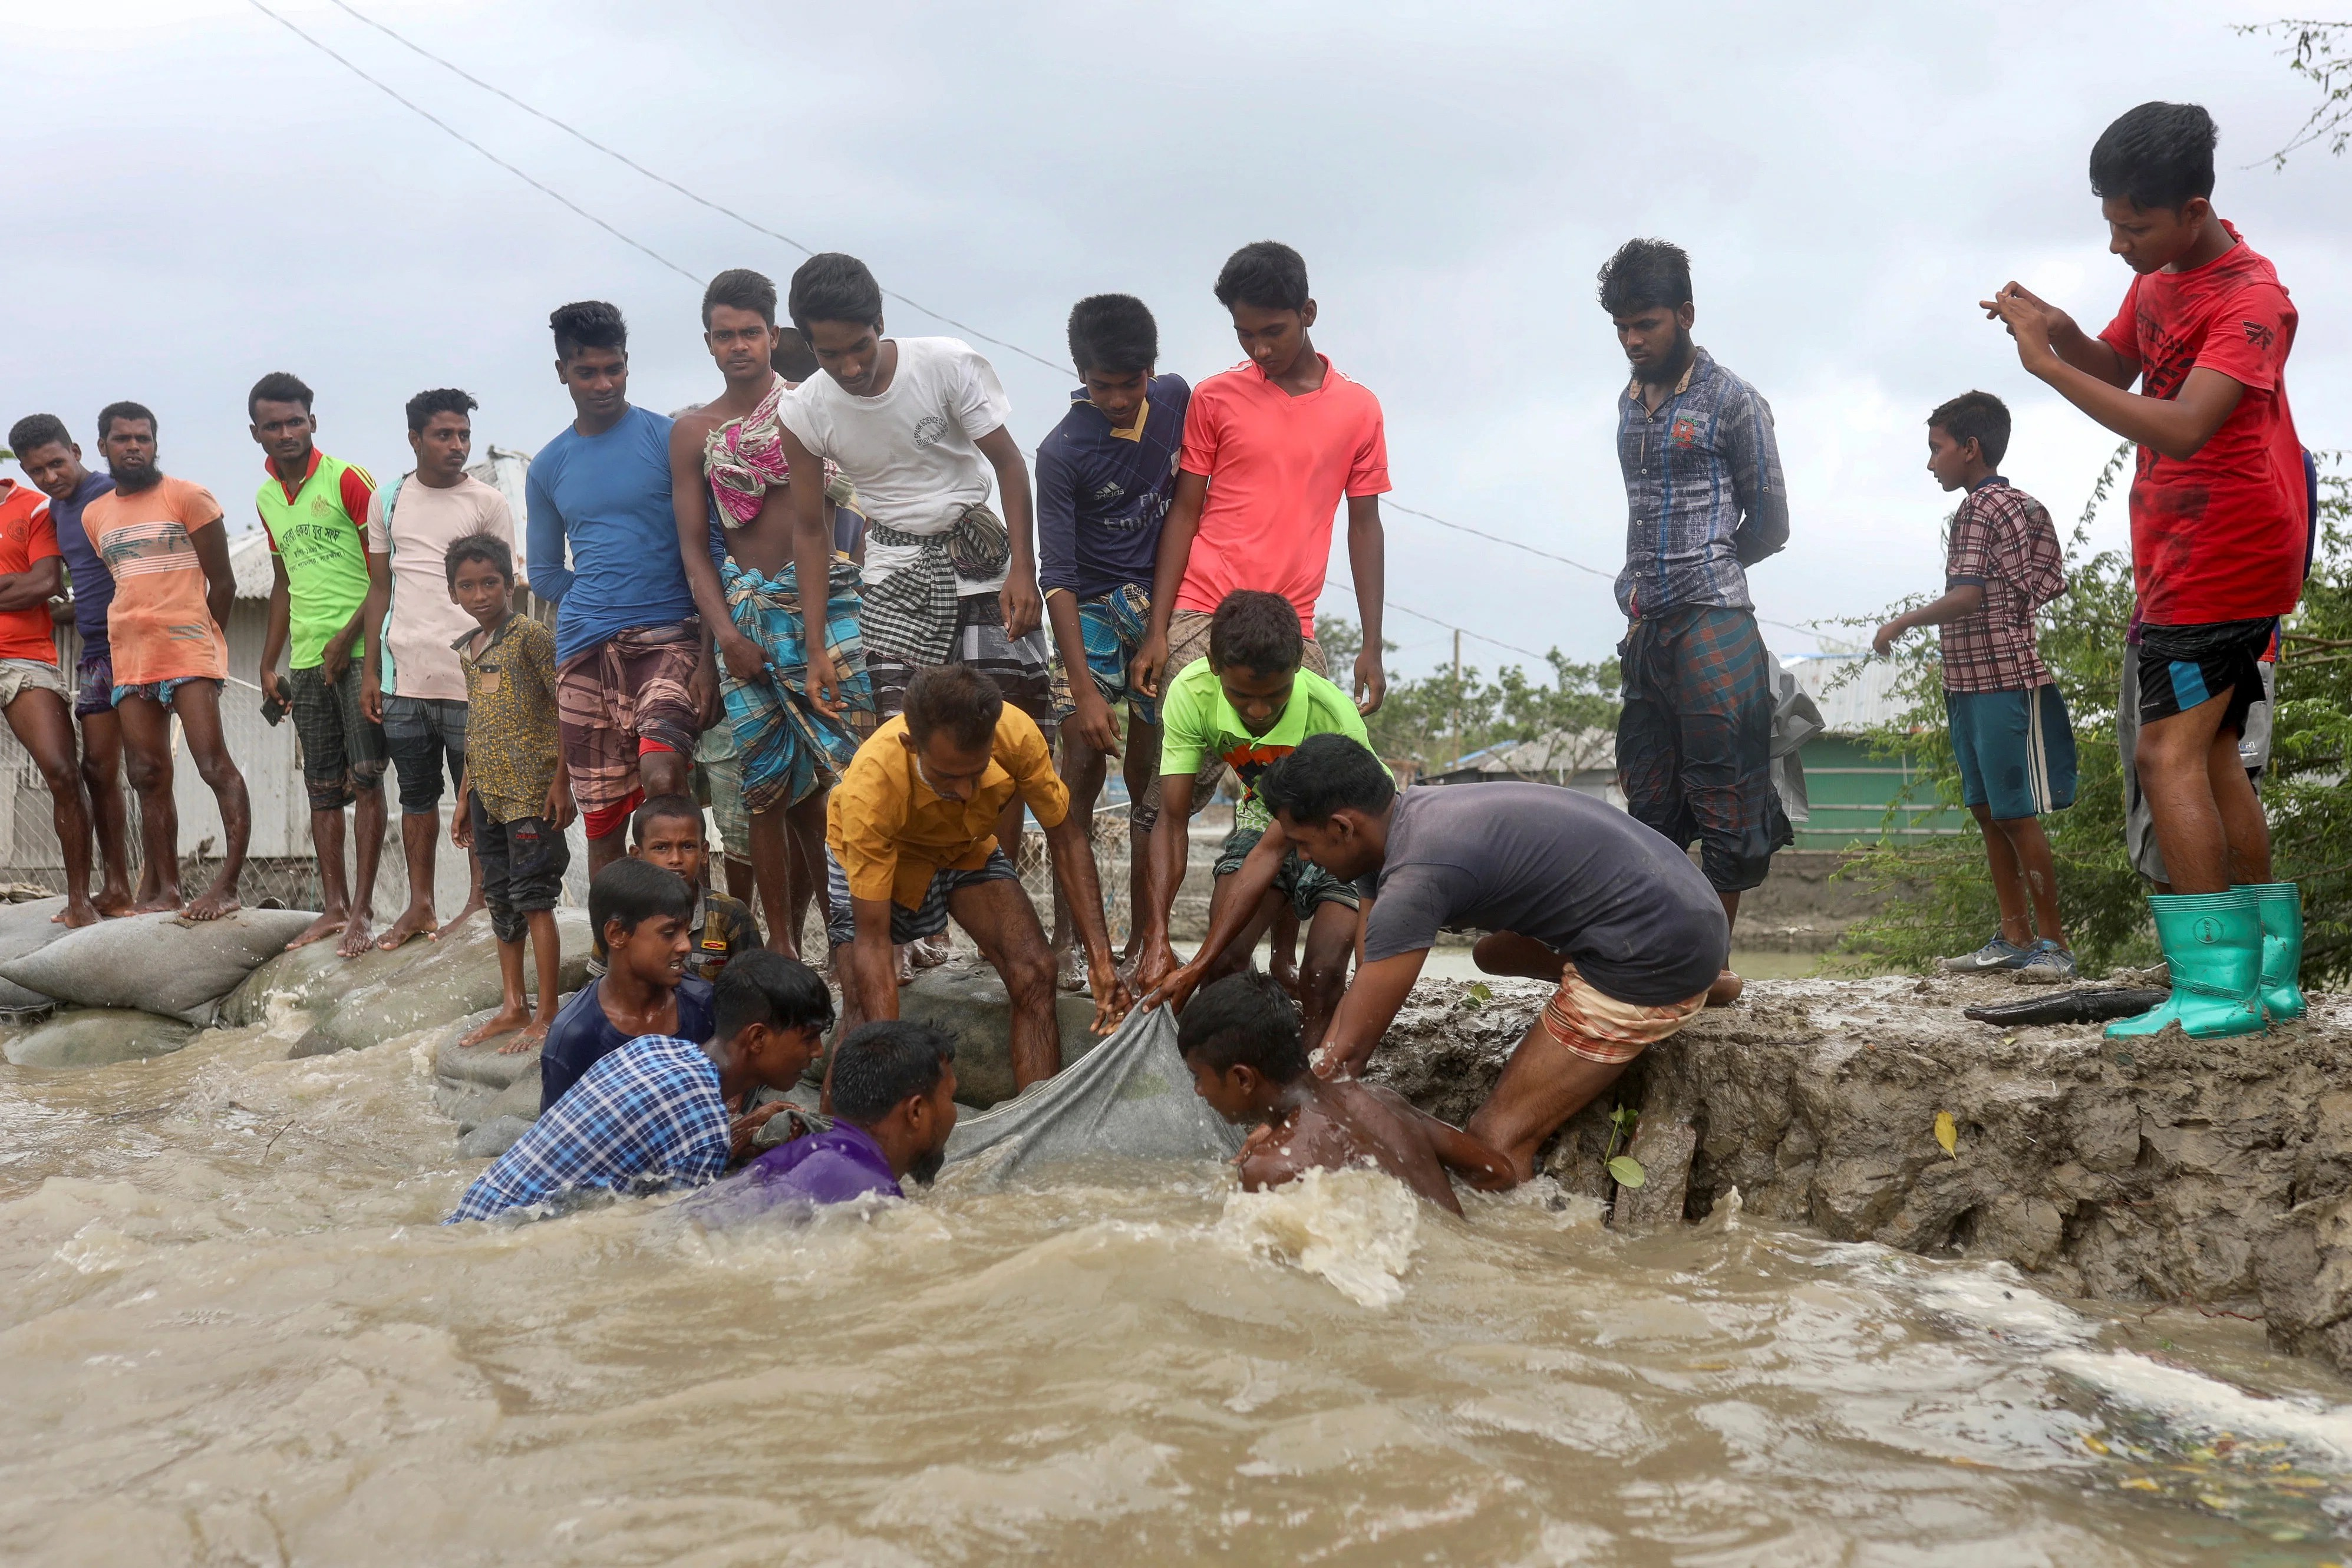 Local people try to enforce the embankment before the cyclone Amphan makes its landfall in Gabura outskirts of Satkhira district on 20 May 2020.